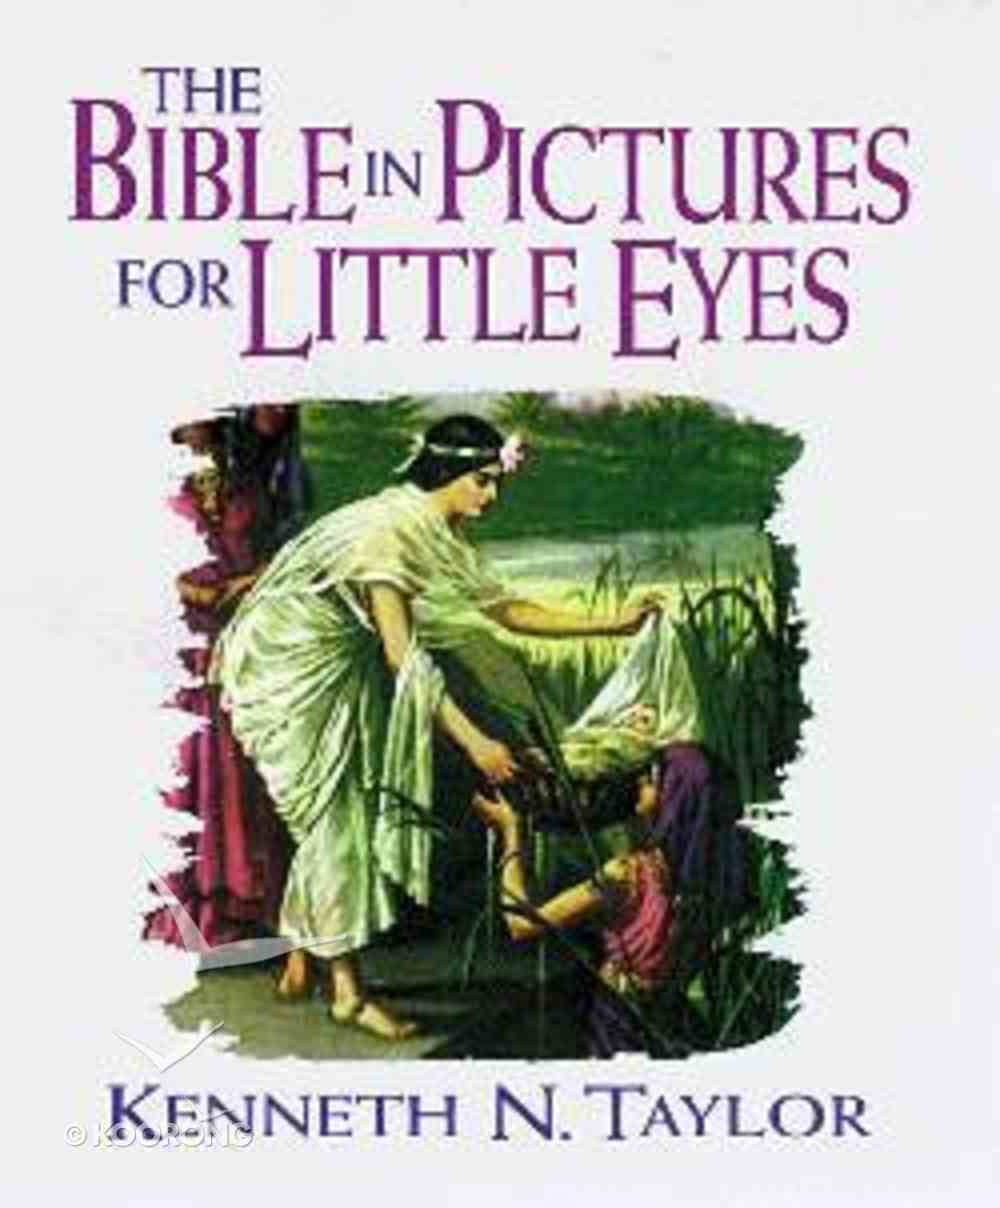 The Bible in Pictures For Little Eyes (Toddler's Size) Hardback